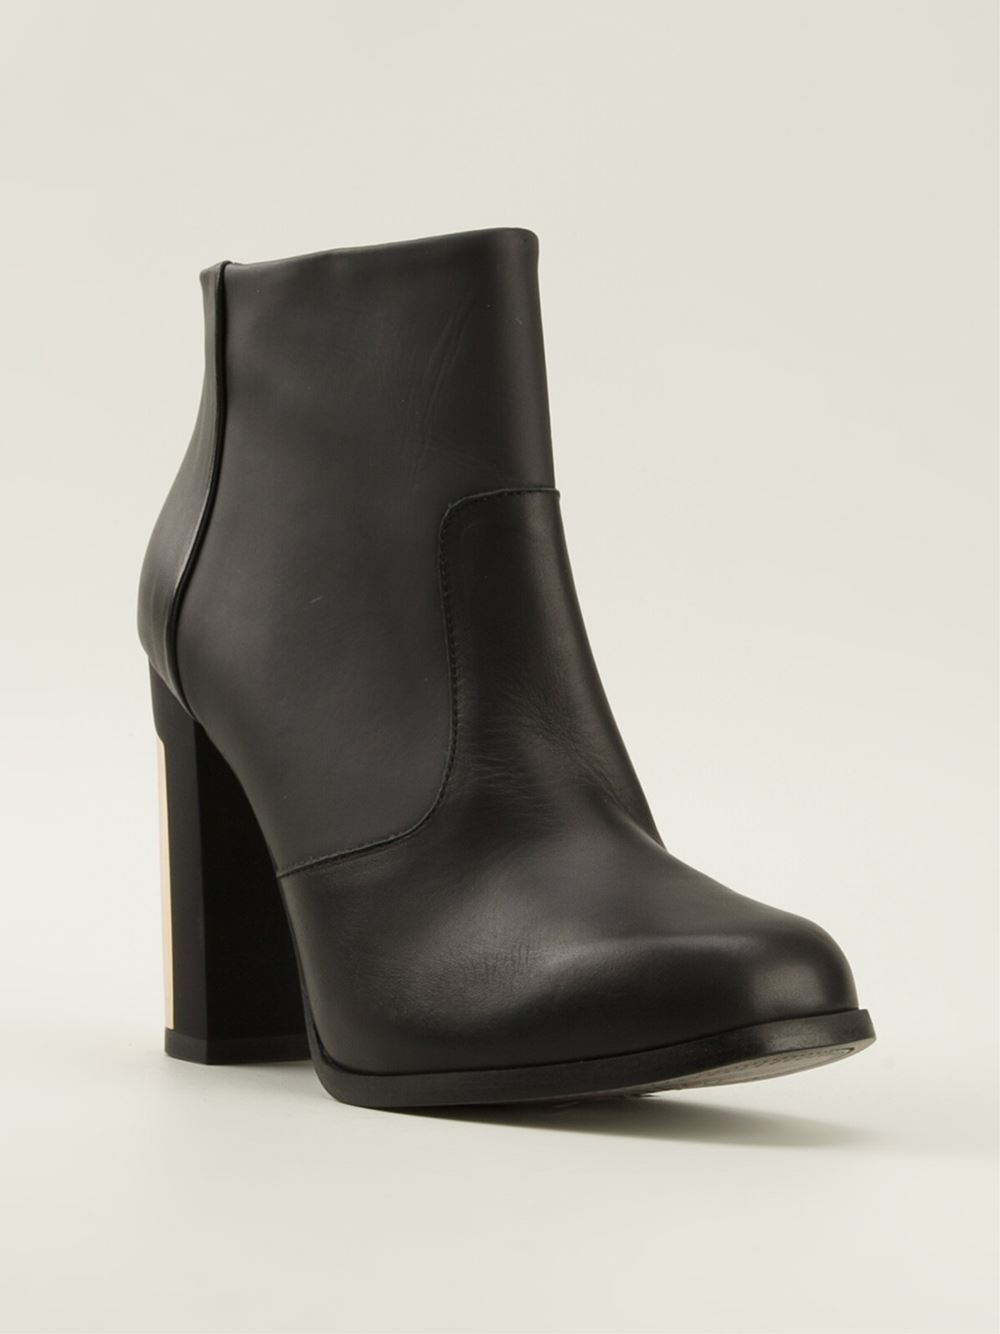 Miista 'Alayna' Boots in Black